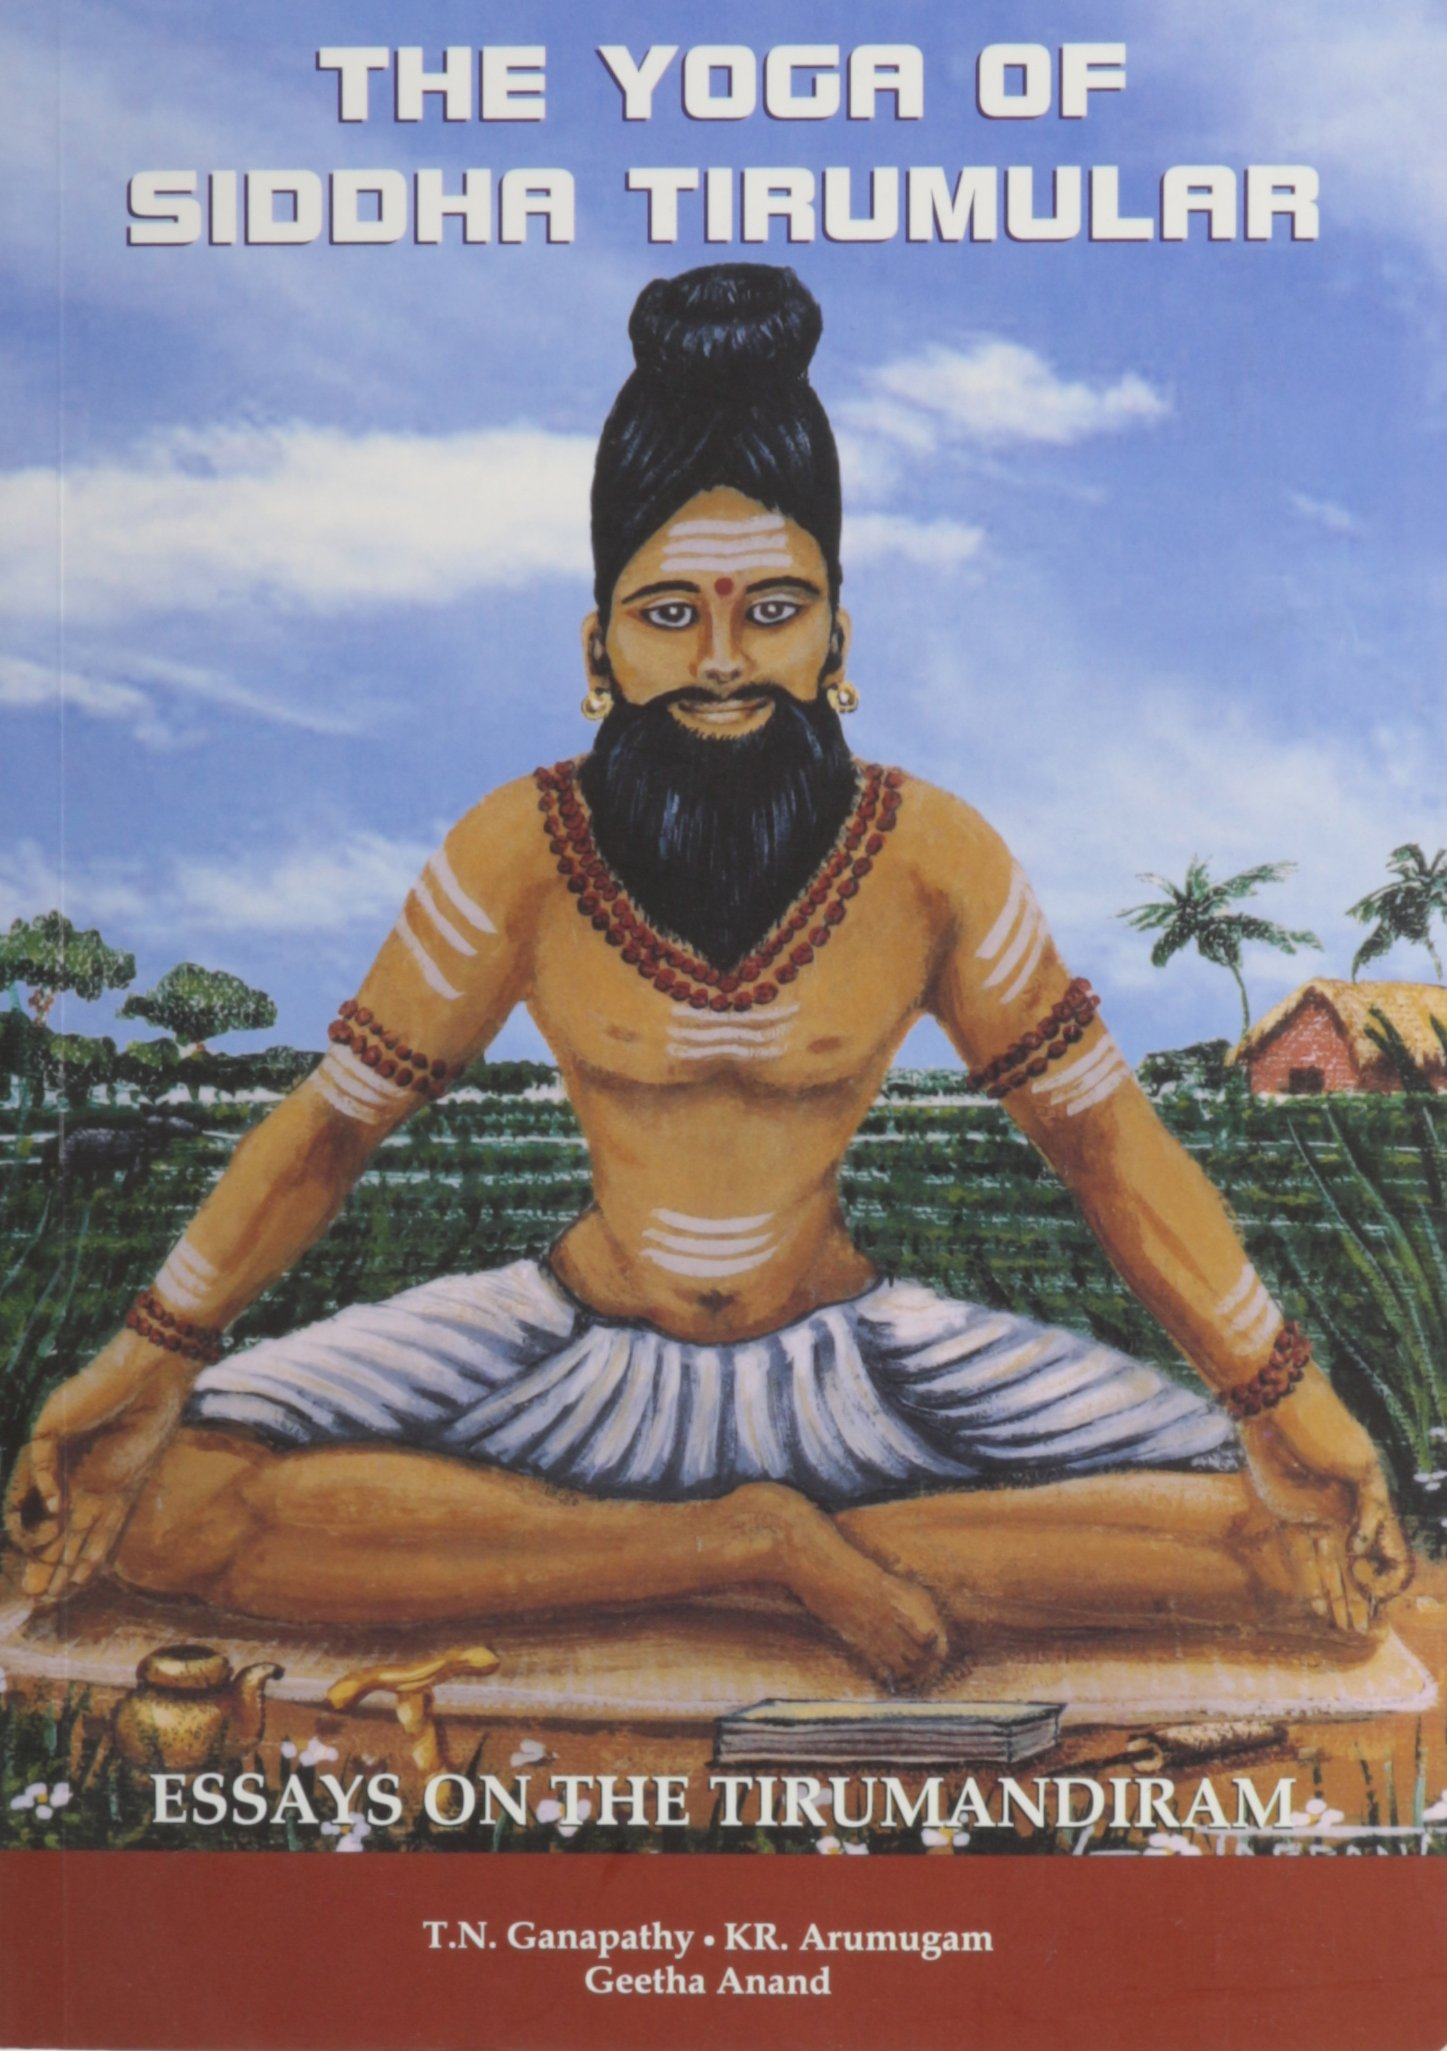 yoga of siddha tirumular essays on the tirumandiram t n yoga of siddha tirumular essays on the tirumandiram t n ganapathy kr arumugam marshall govindan 9781895383218 com books